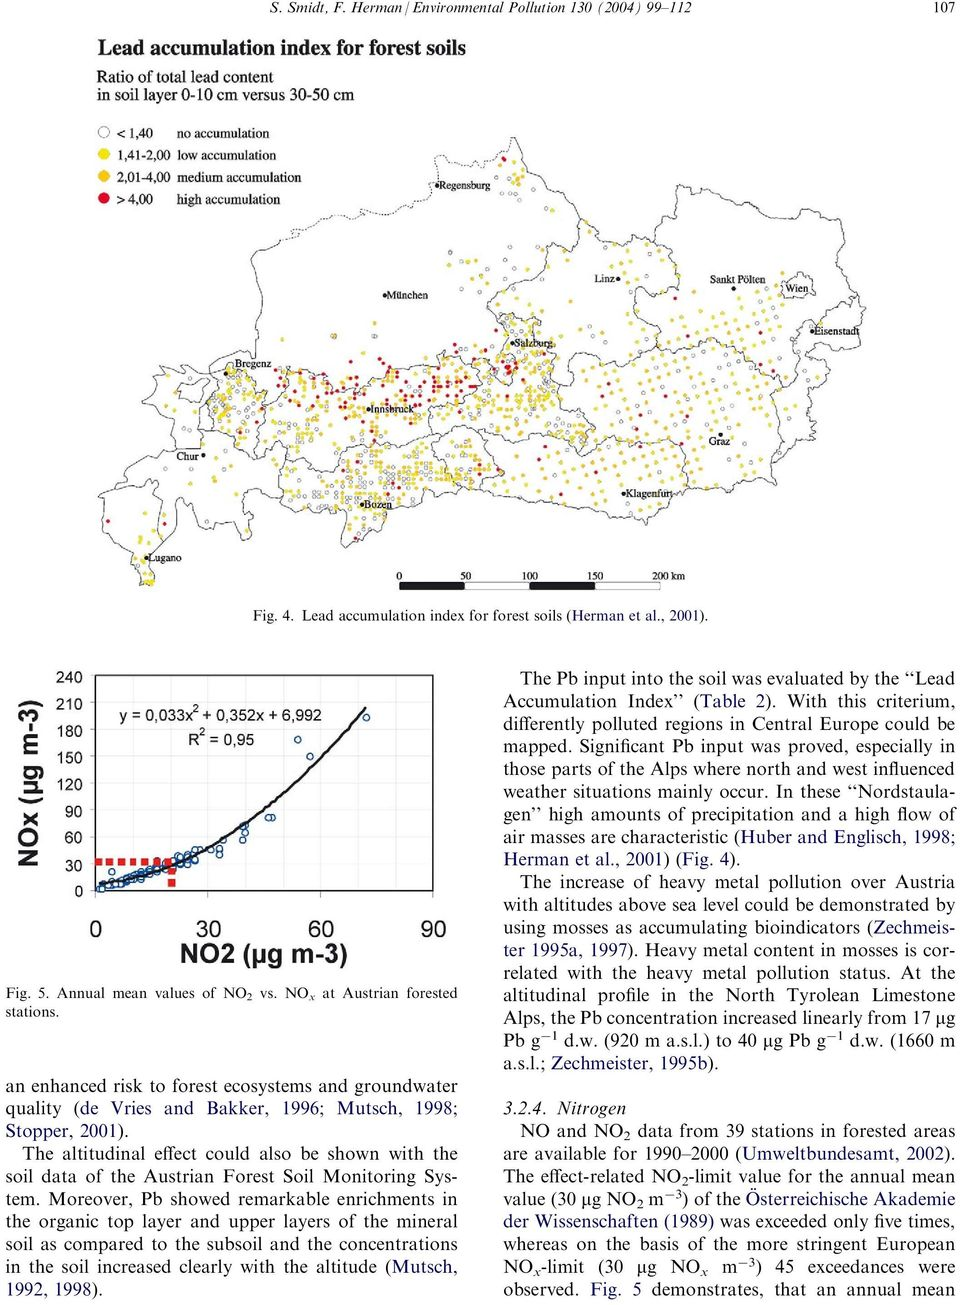 The altitudinal effect could also be shown with the soil data of the Austrian Forest Soil Monitoring System.